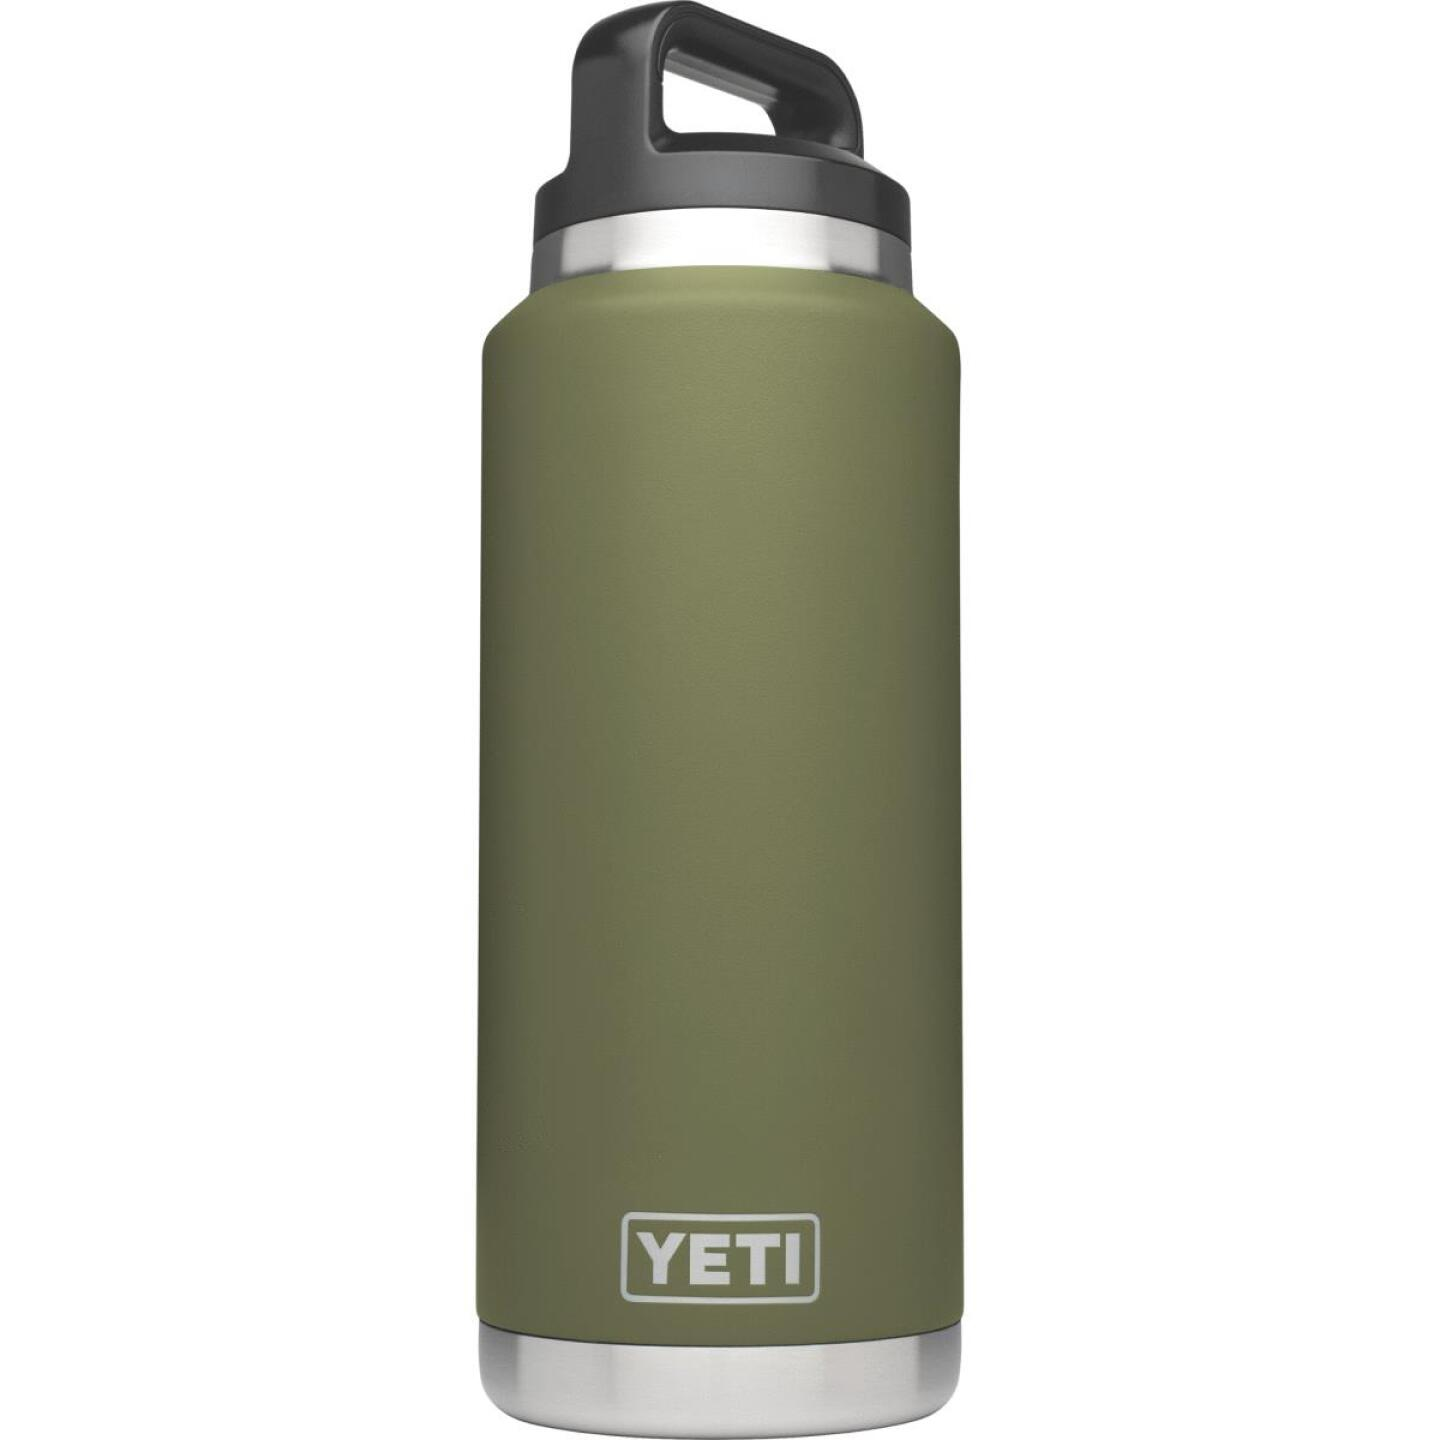 Yeti Rambler 36 Oz. Olive Green Stainless Steel Insulated Vacuum Bottle Image 1